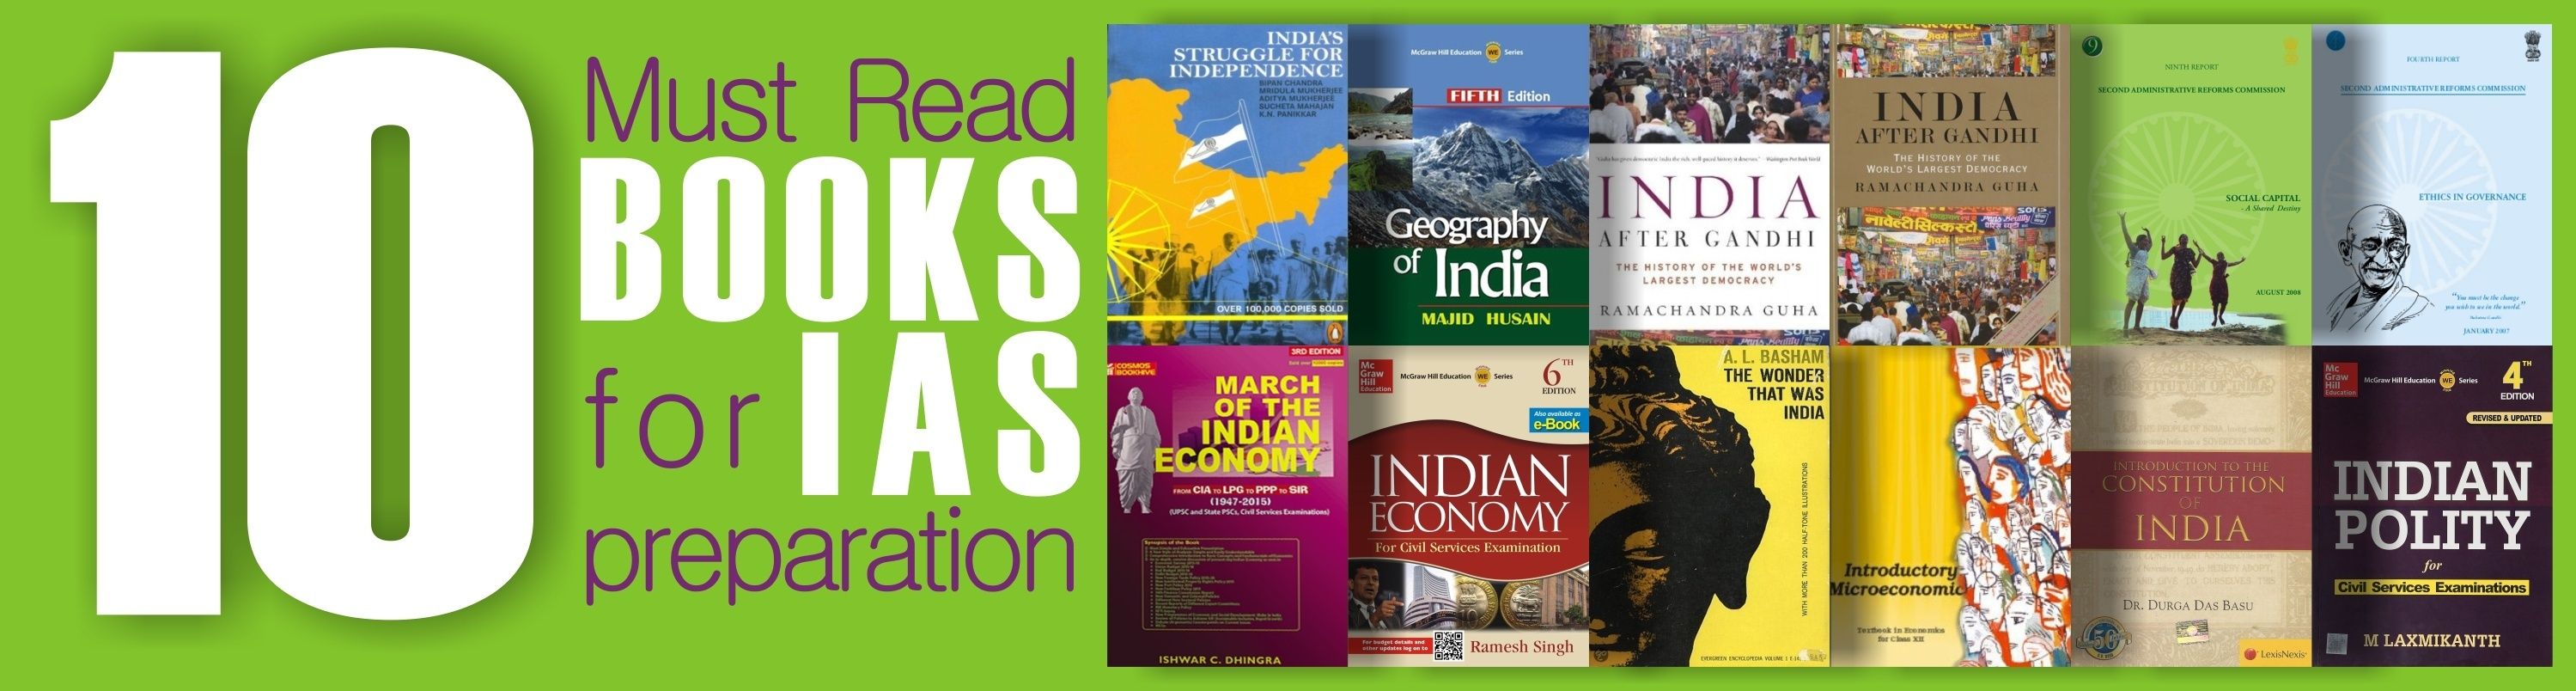 What books should I read for an IAS prelims paper? - Quora